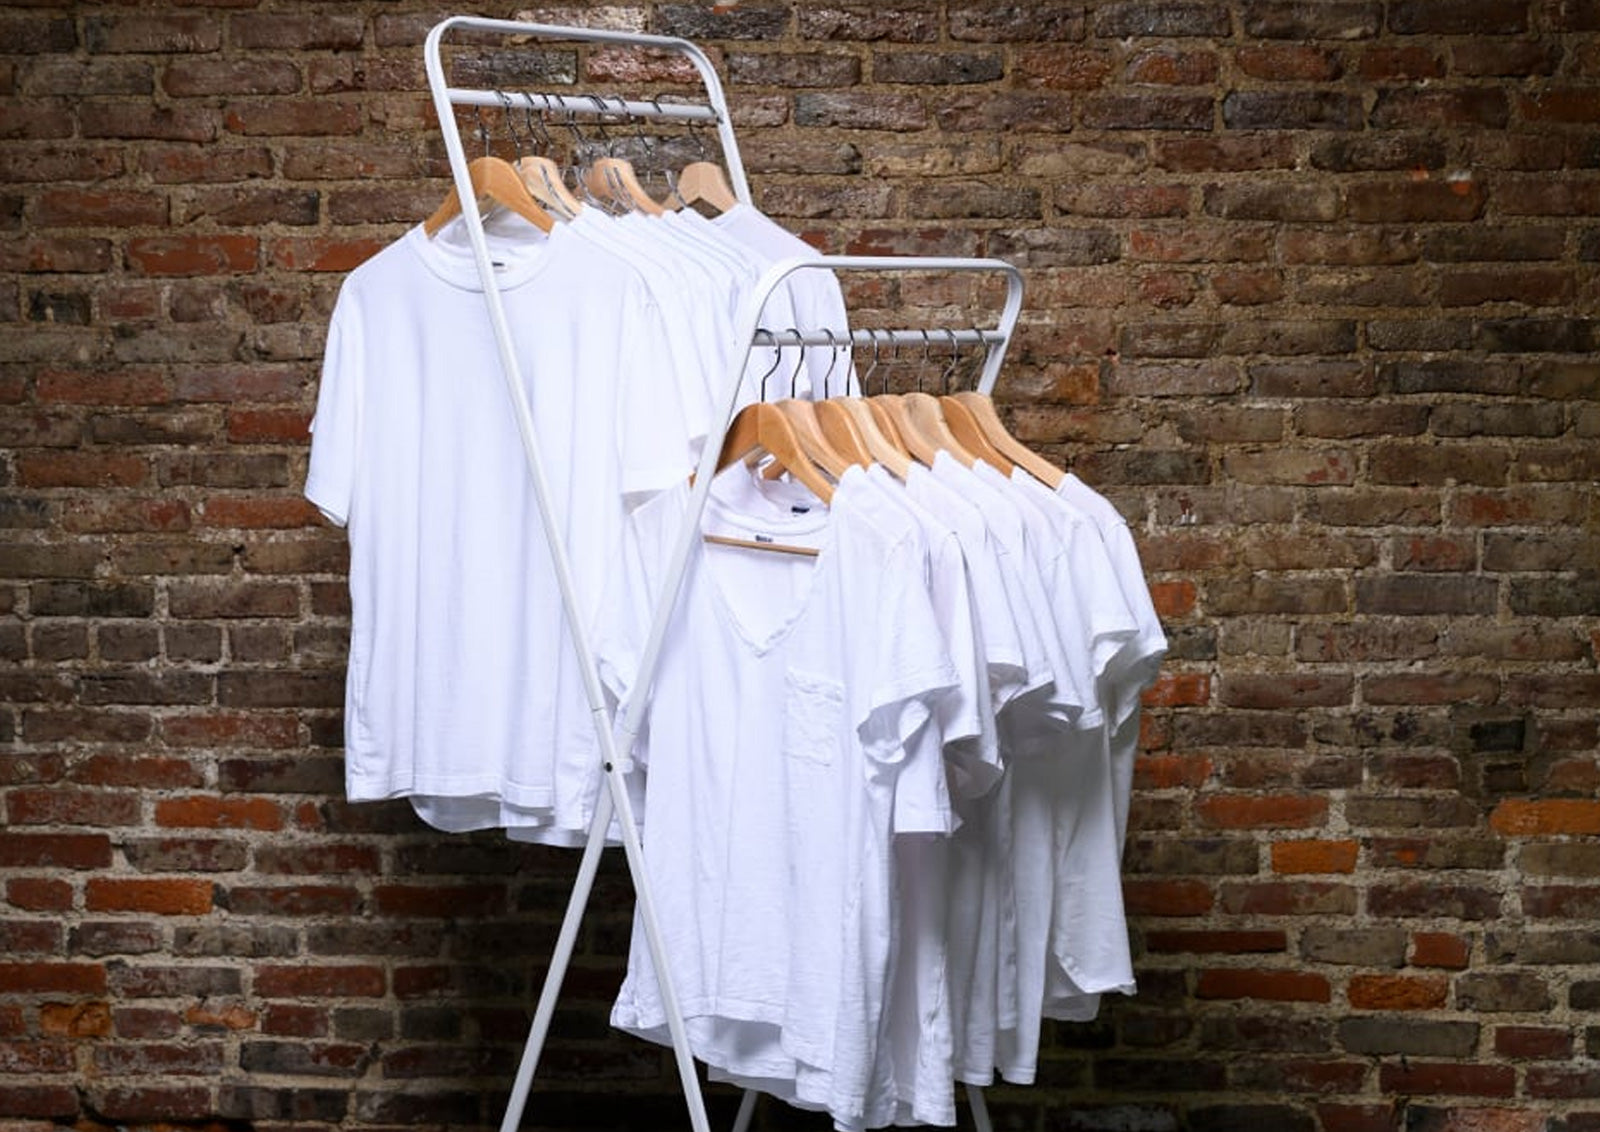 Leoliy t-shirt buying guide